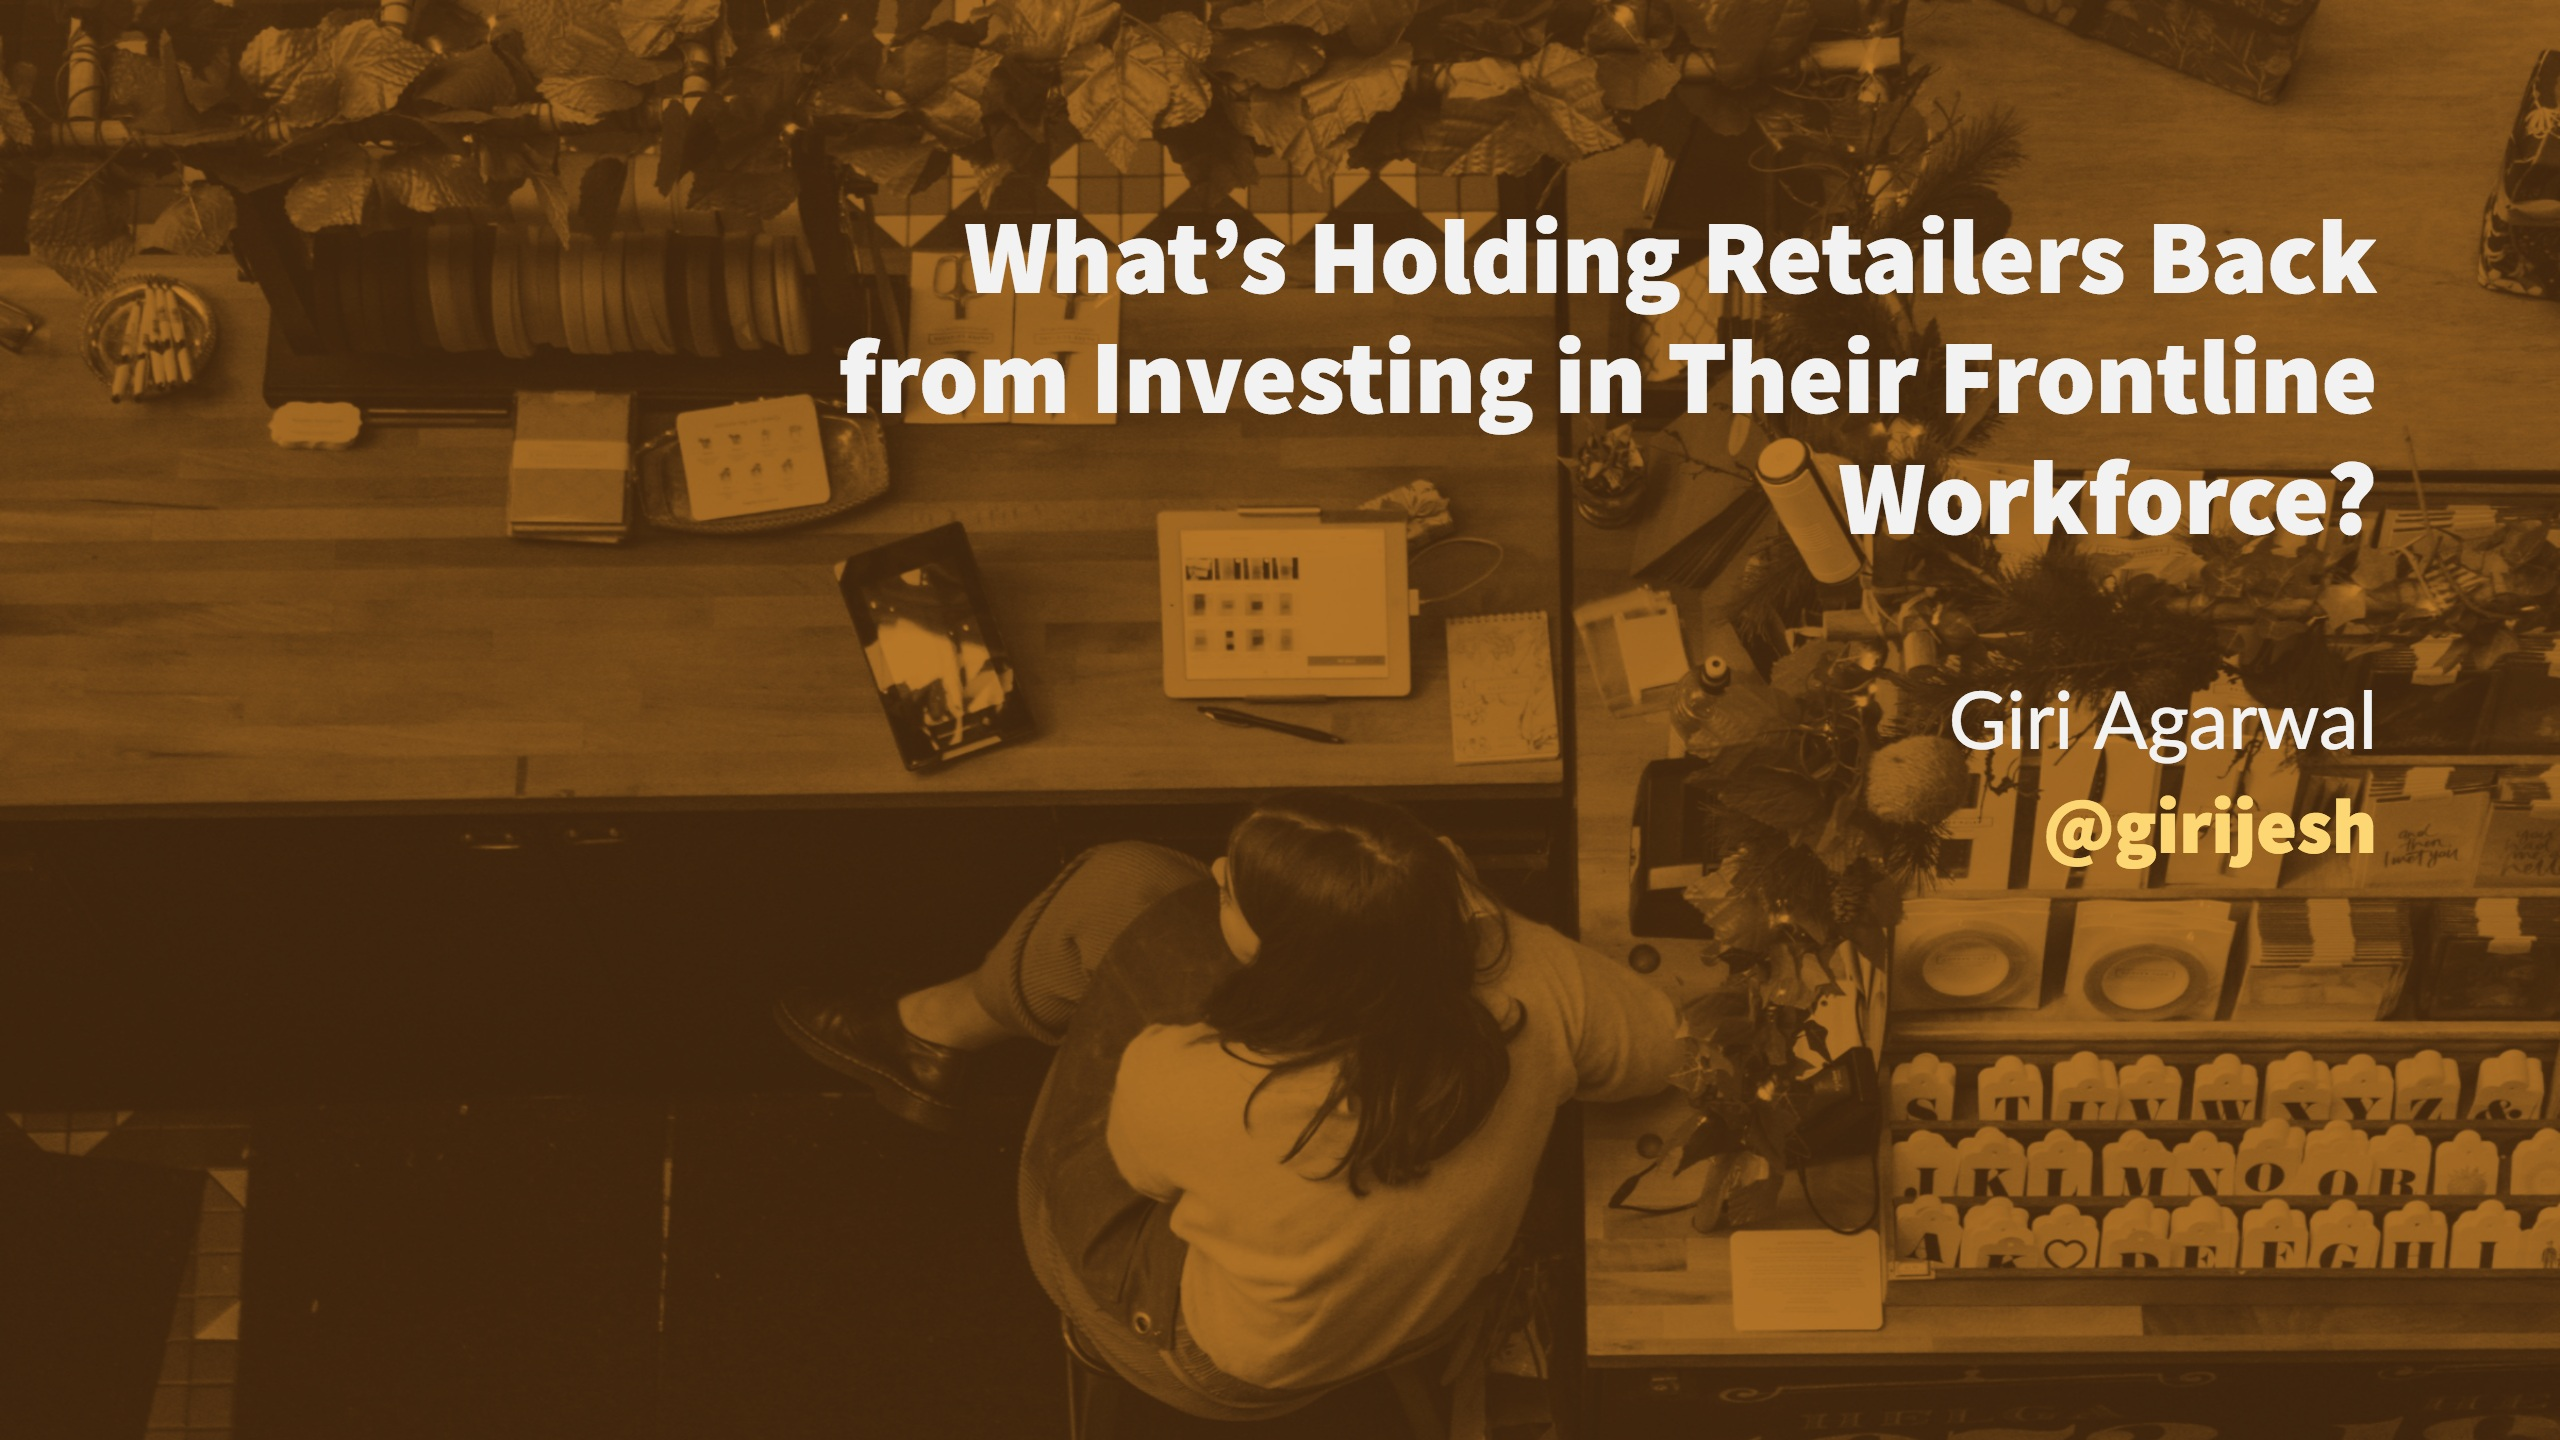 What's Holding Retailers Back from Investing in Their Frontline Workforce